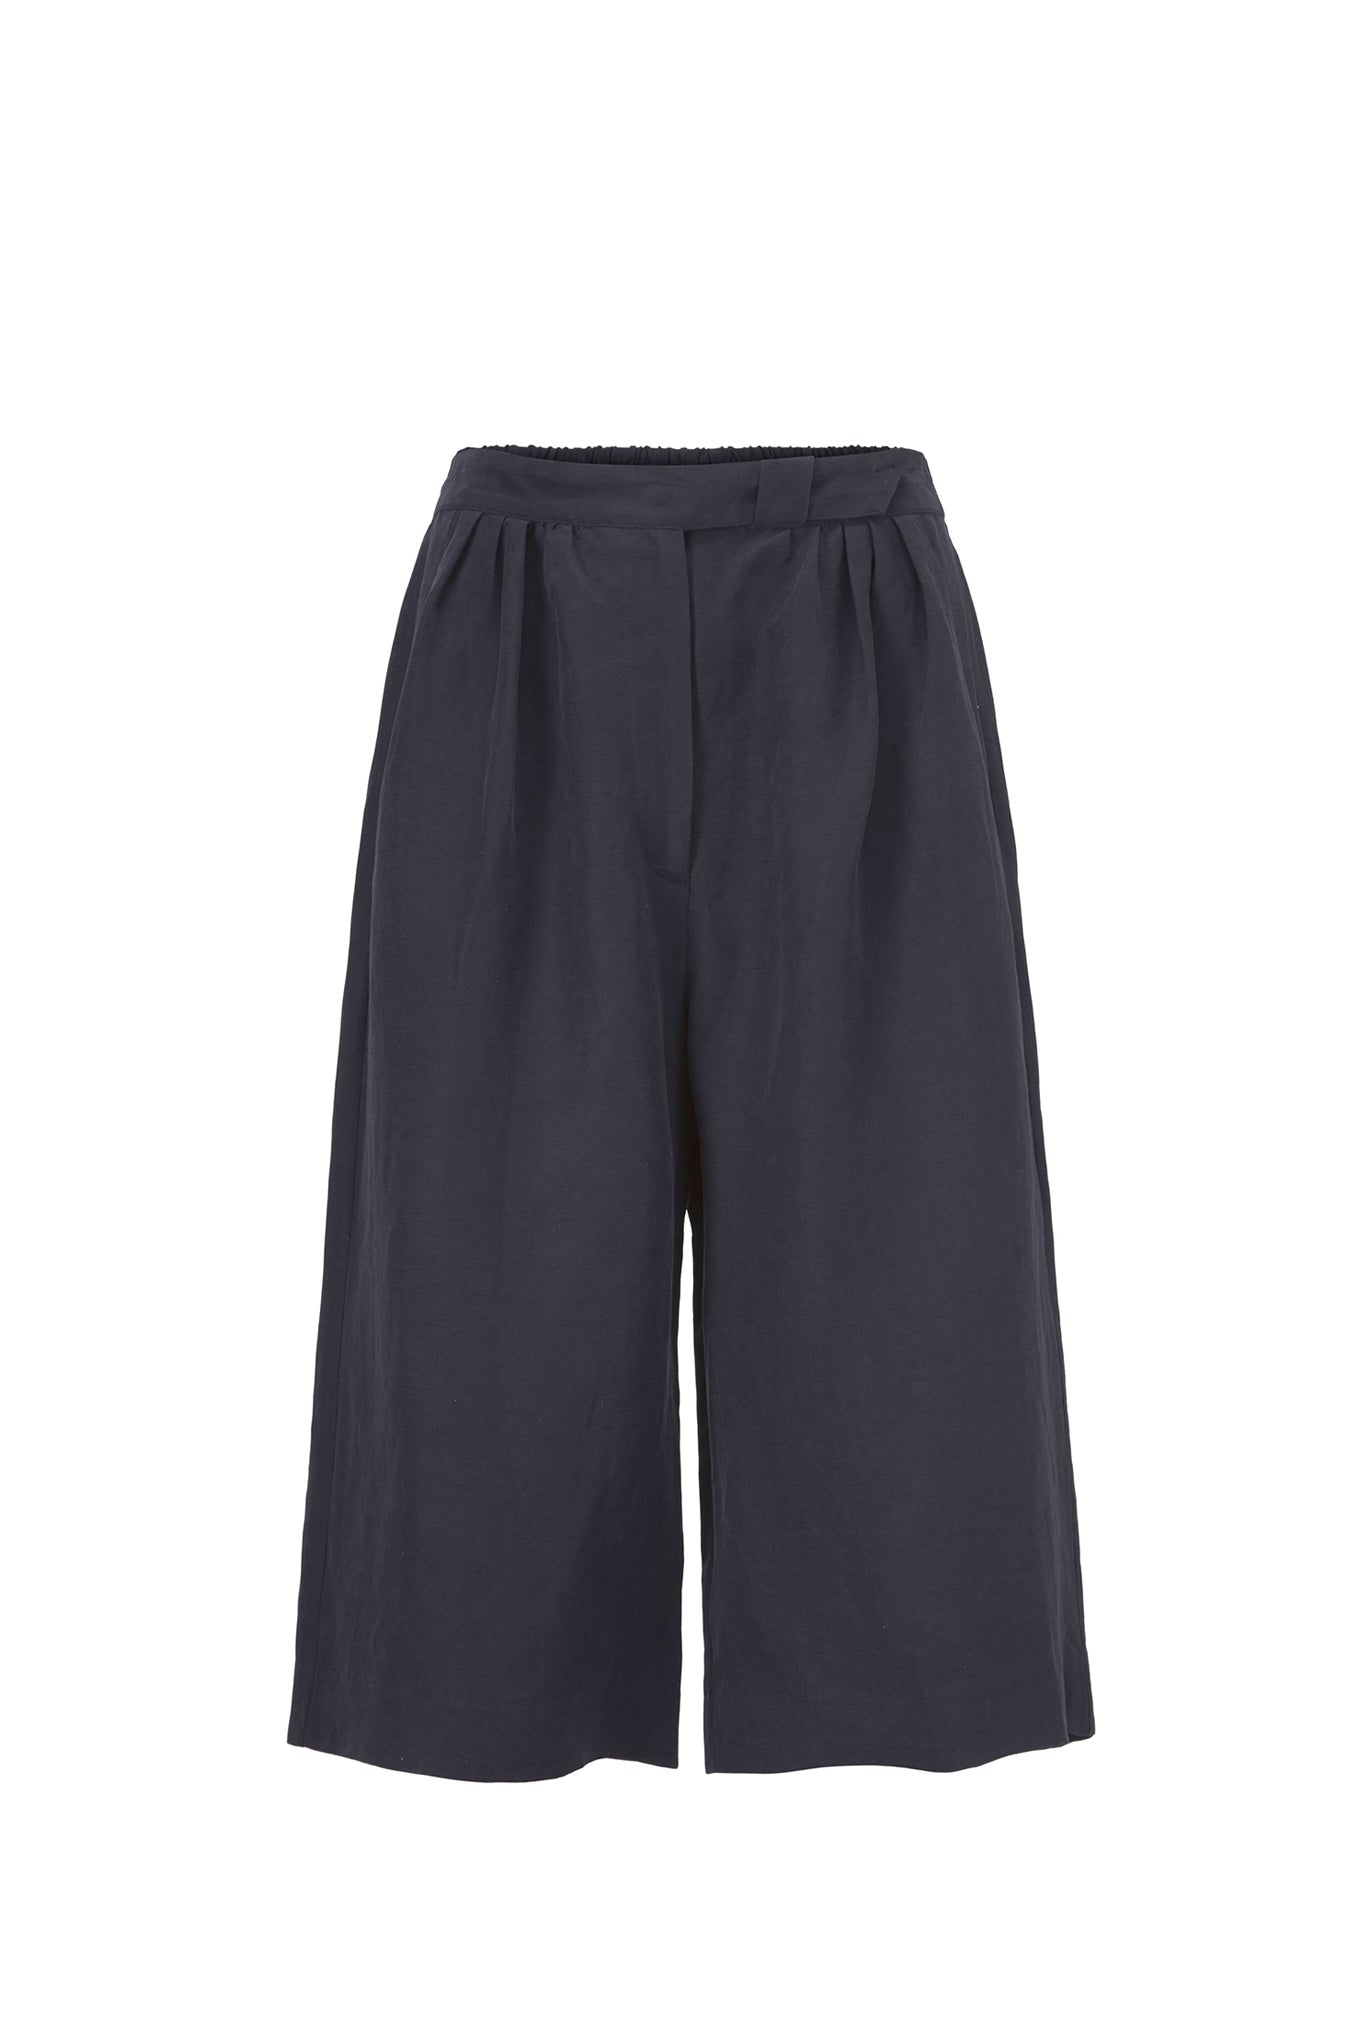 Cano Shorts - Navy - Silk/Linen